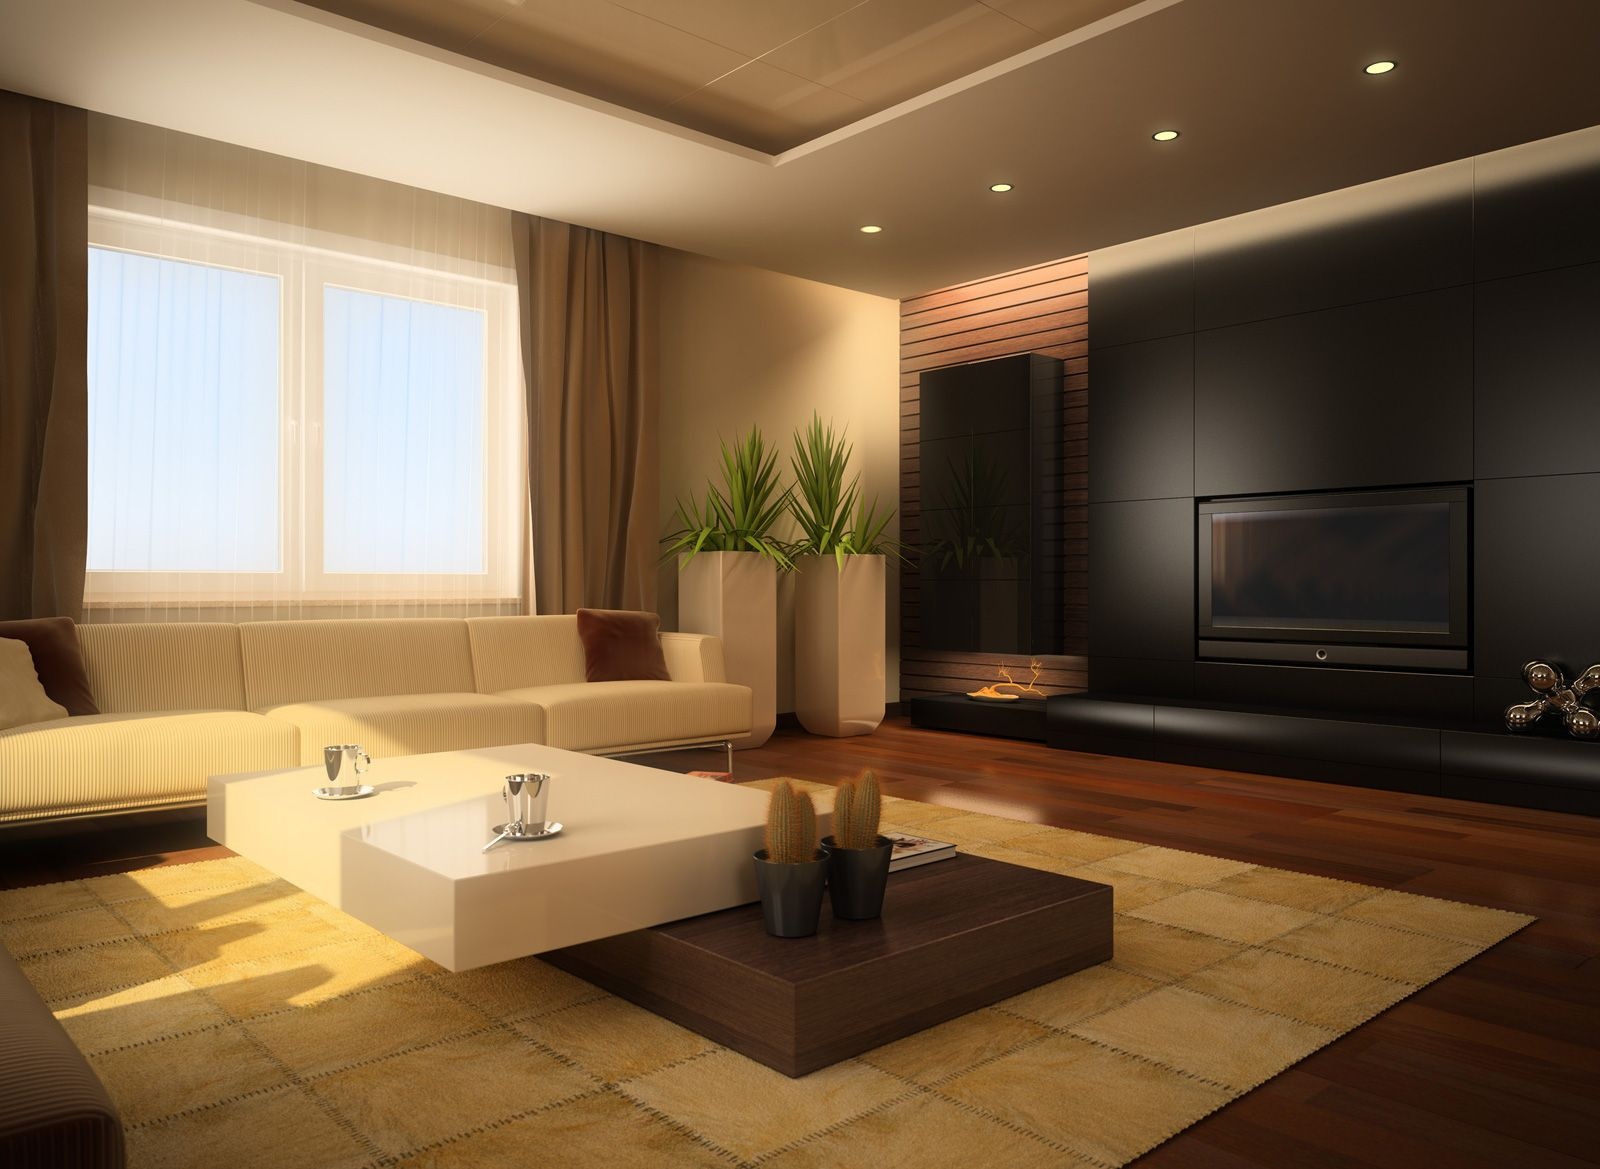 Modern Interior Design Pictures modern minimalist interior designs for living rooms: modern